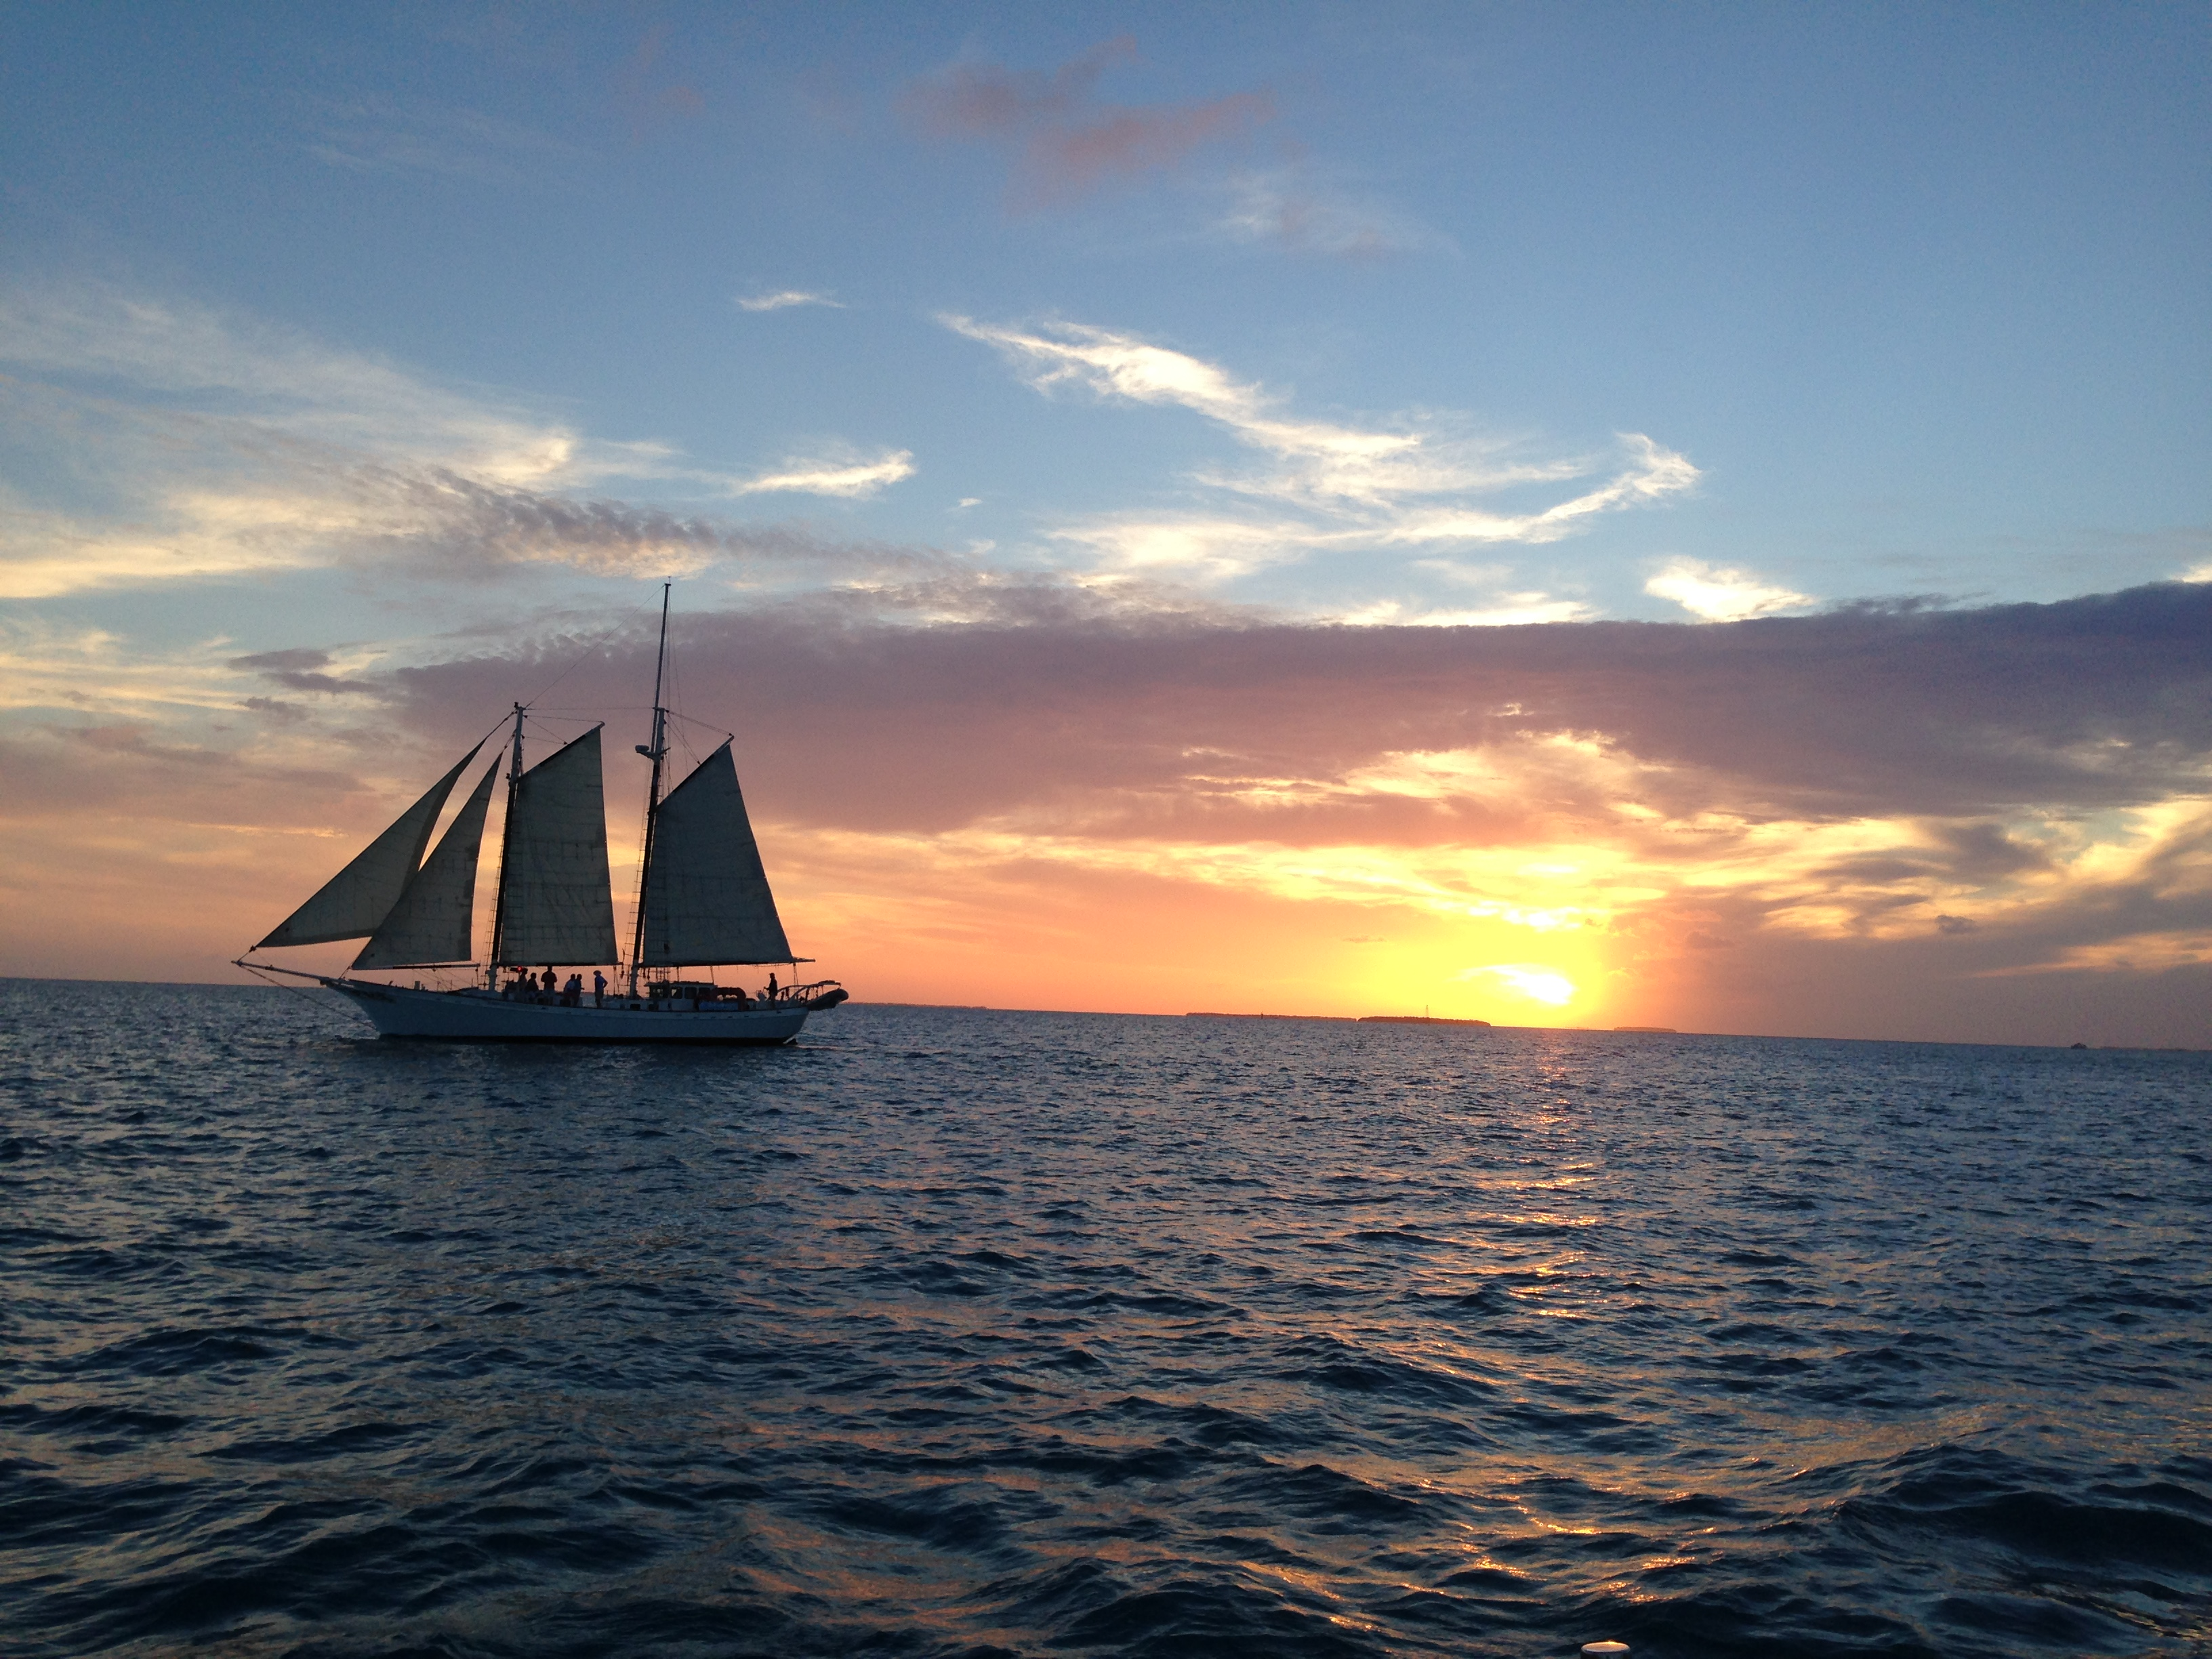 Sunset Cruise, Key West, Fl